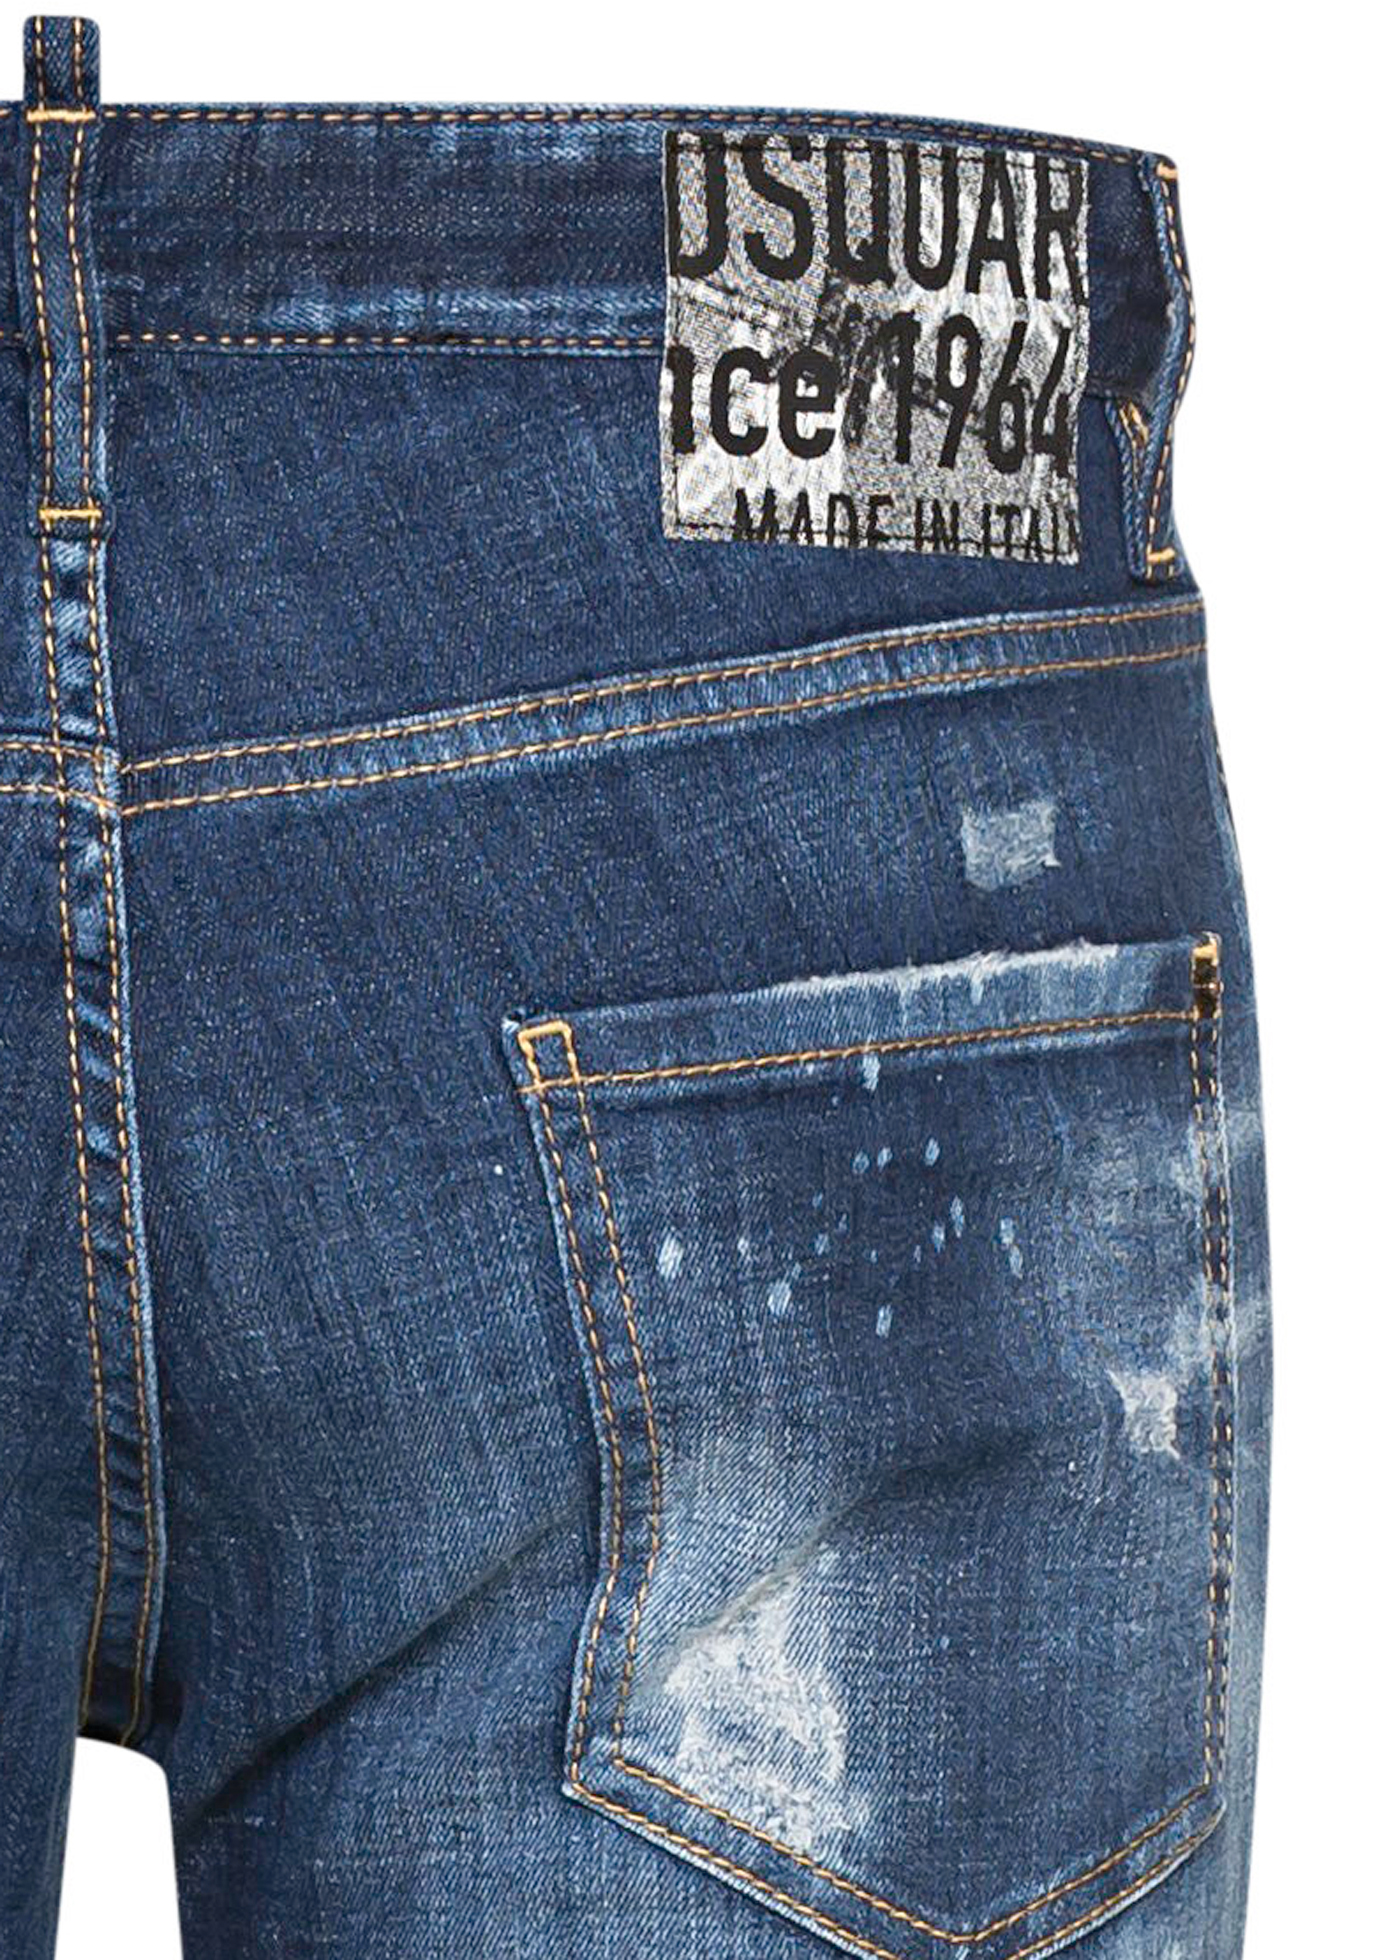 1964 Cool Guy Jeans image number 3